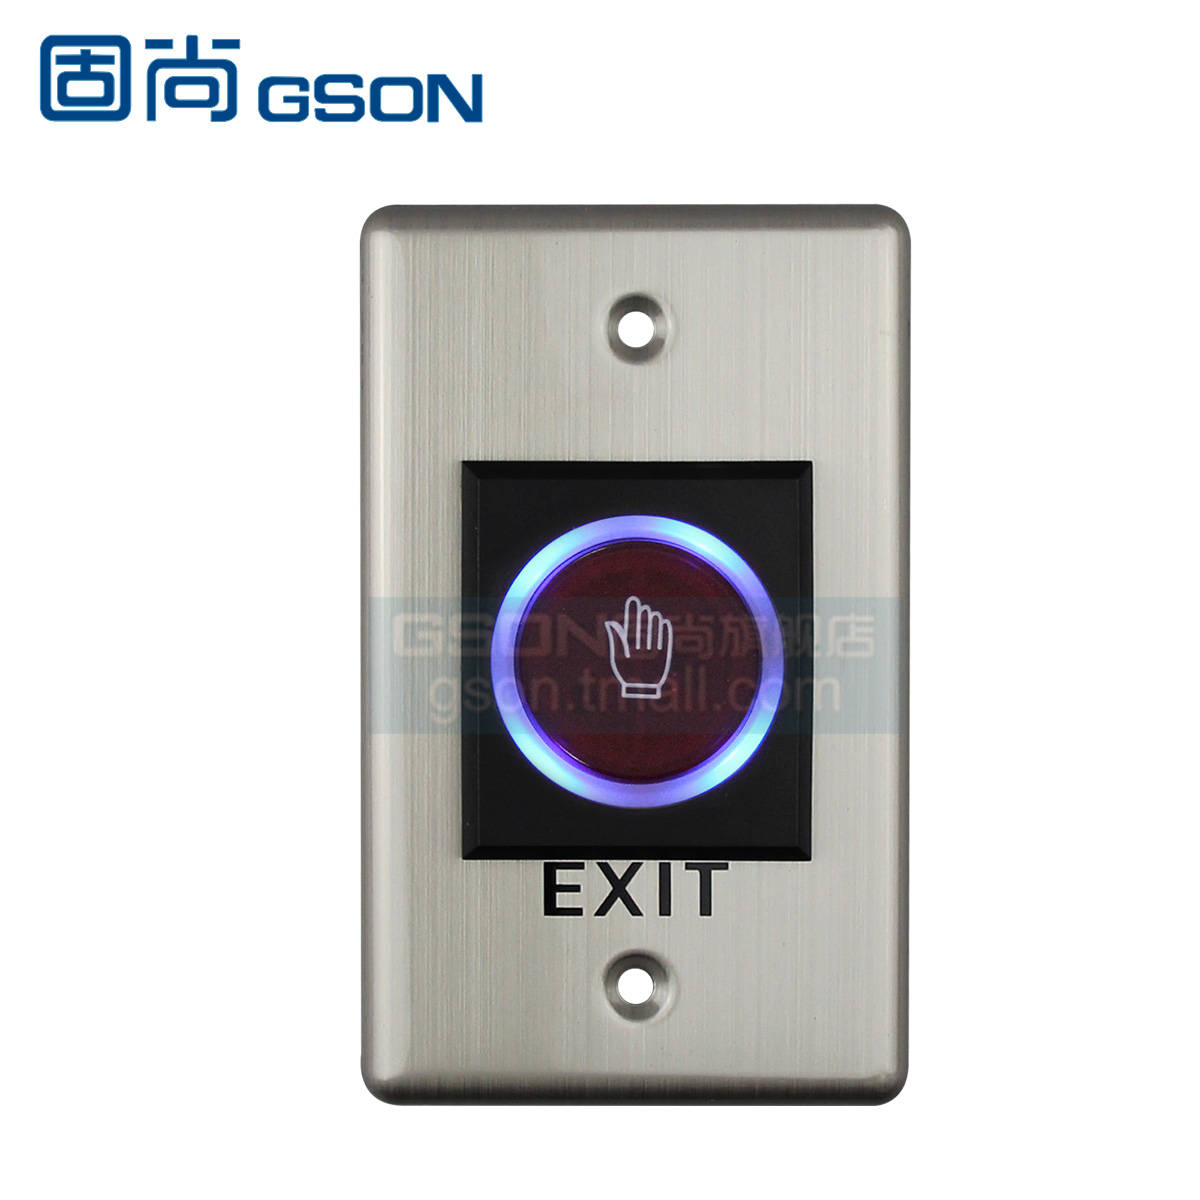 Gson solid yet have access infrared sensor infrared sensors go out switch button access button button